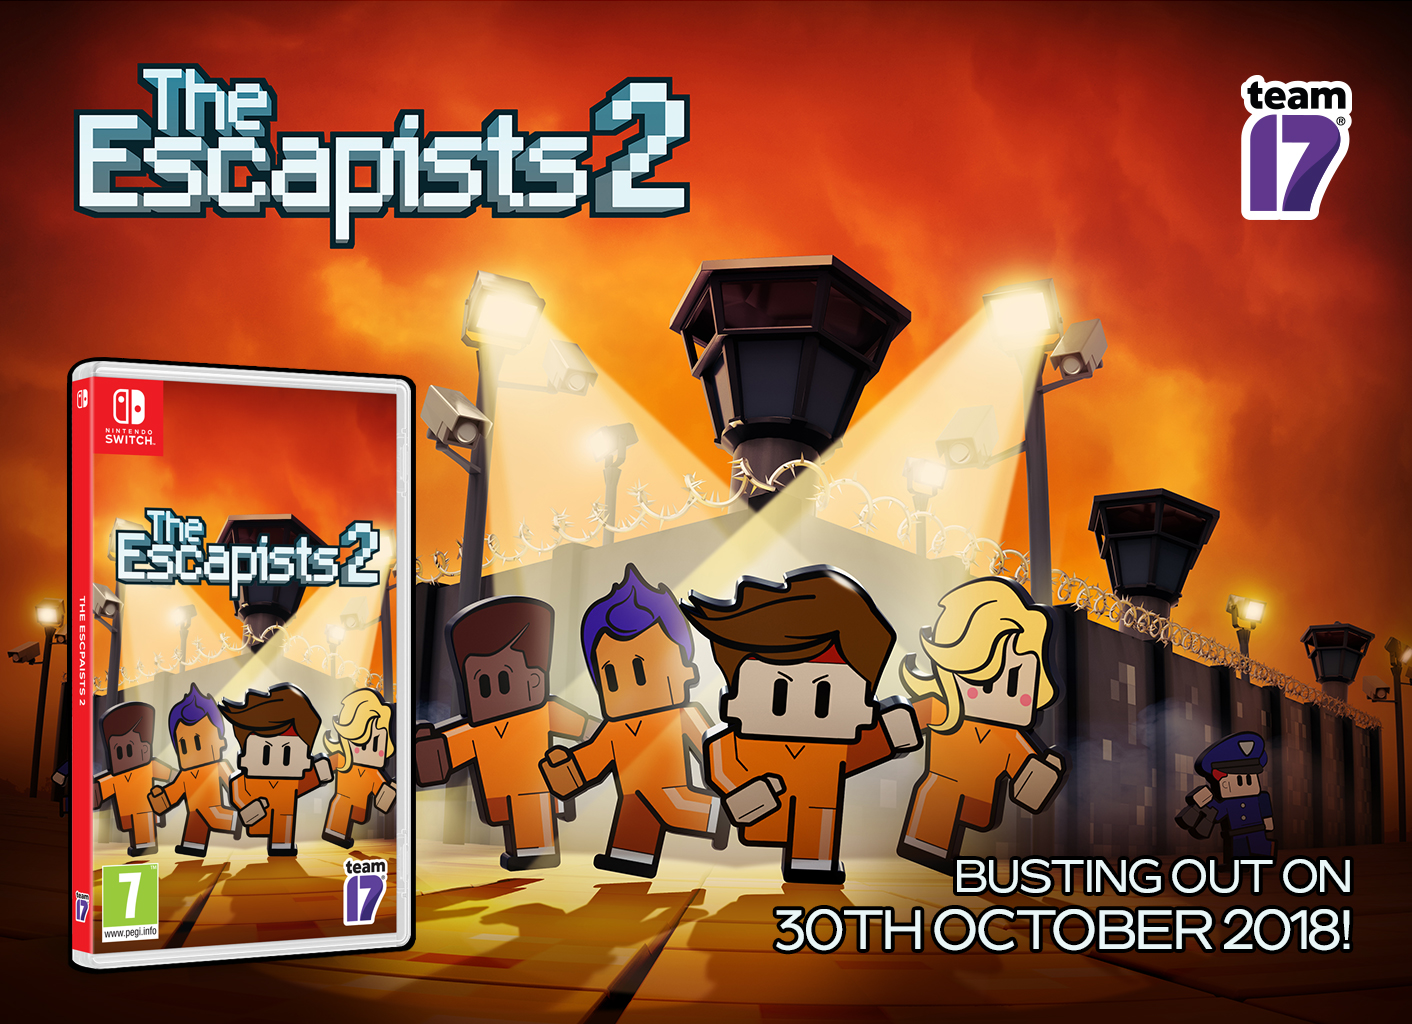 The Escapists 2: Physical release on Nintendo Switch